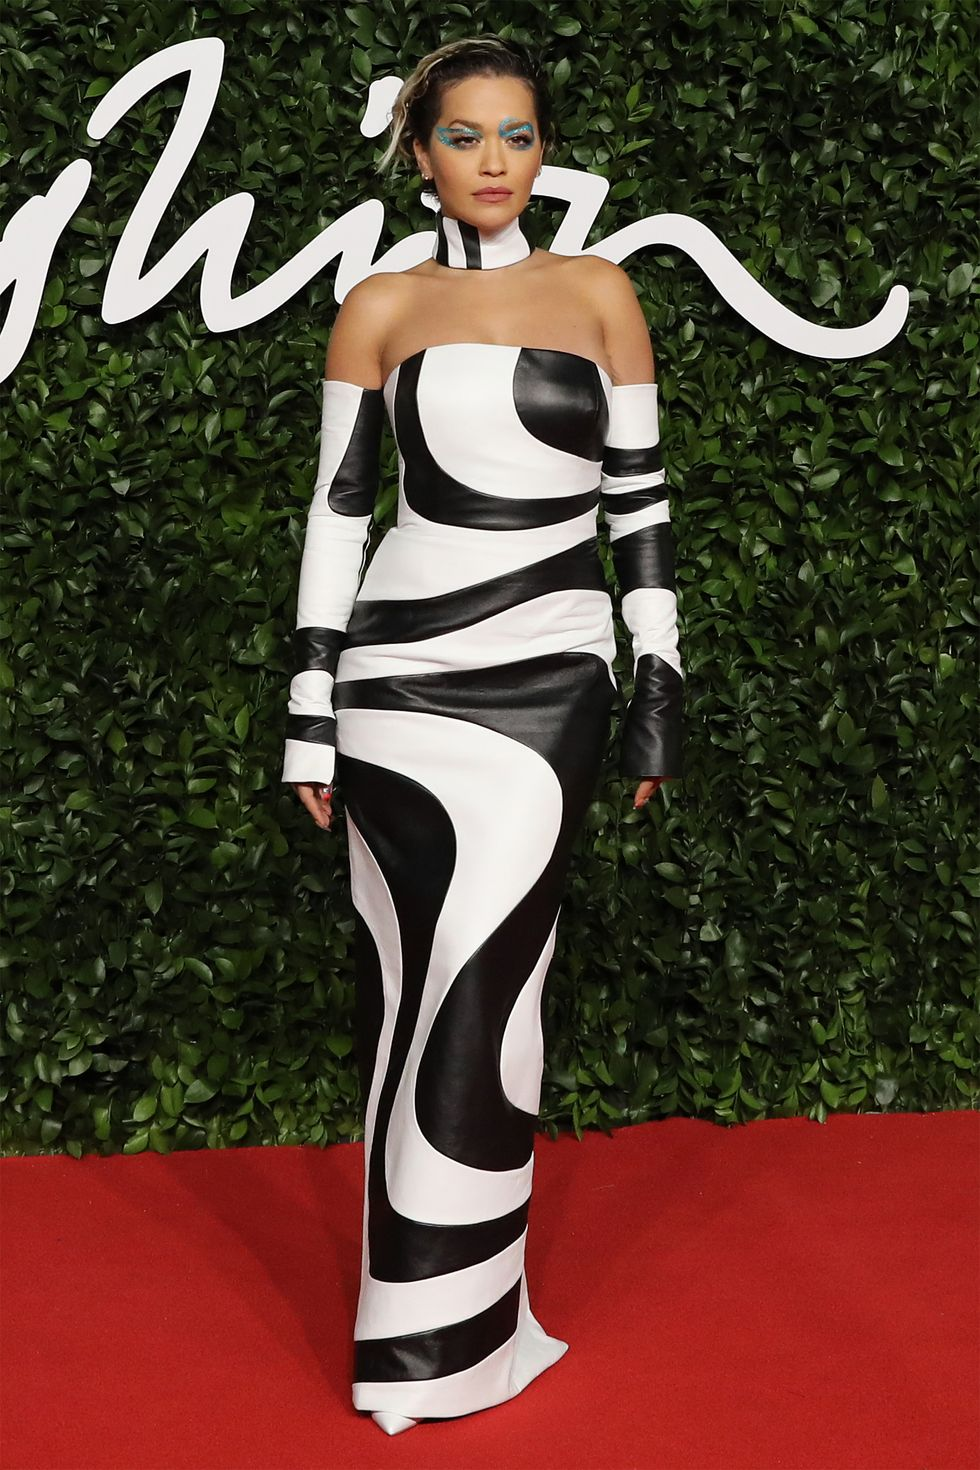 hbz-fashion-awards-2019-rita-ora-1575315166